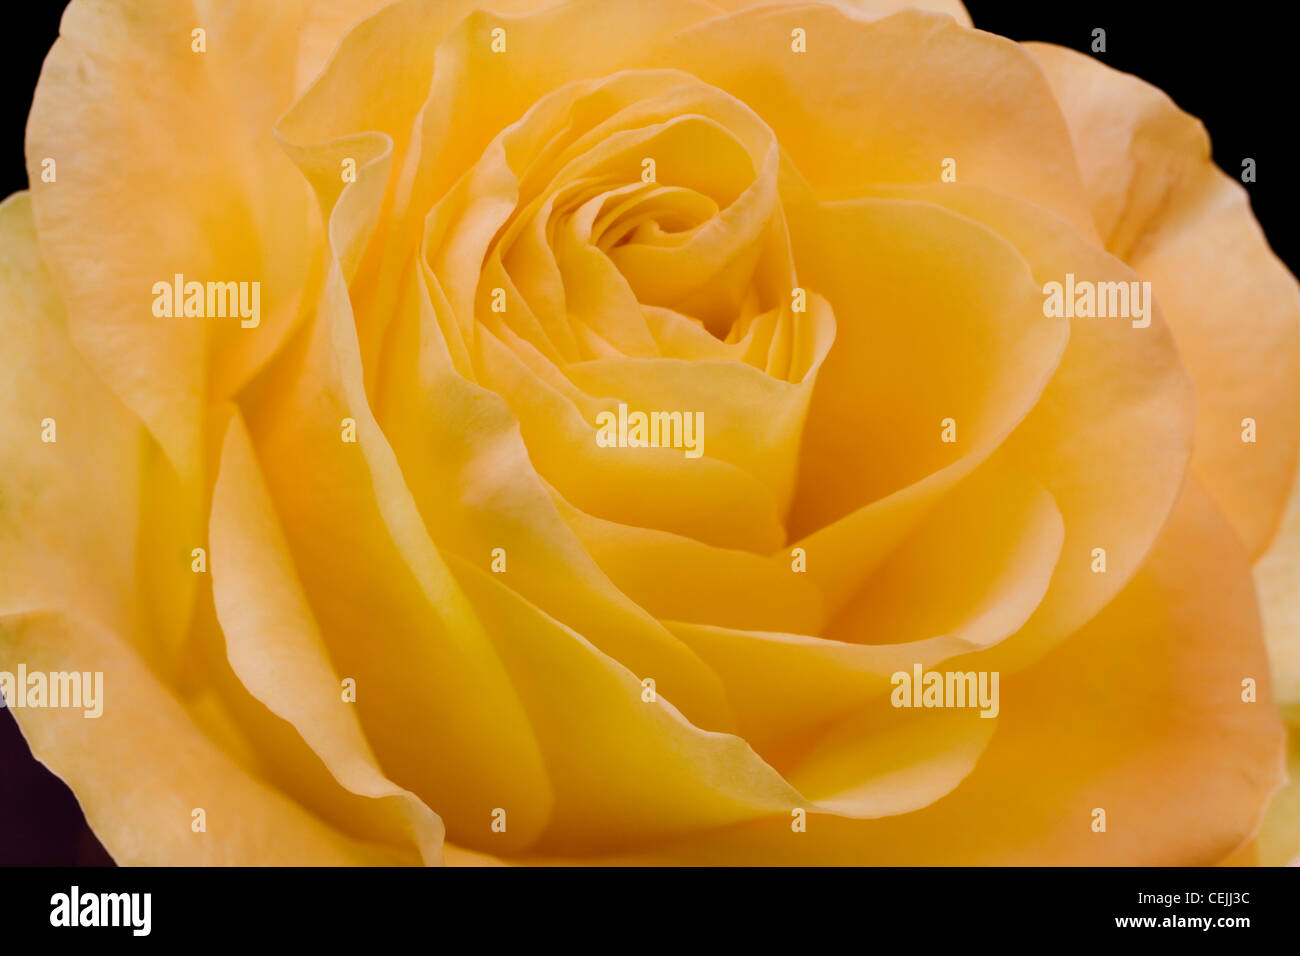 Yellow rose close-up as romantic flower - Stock Image